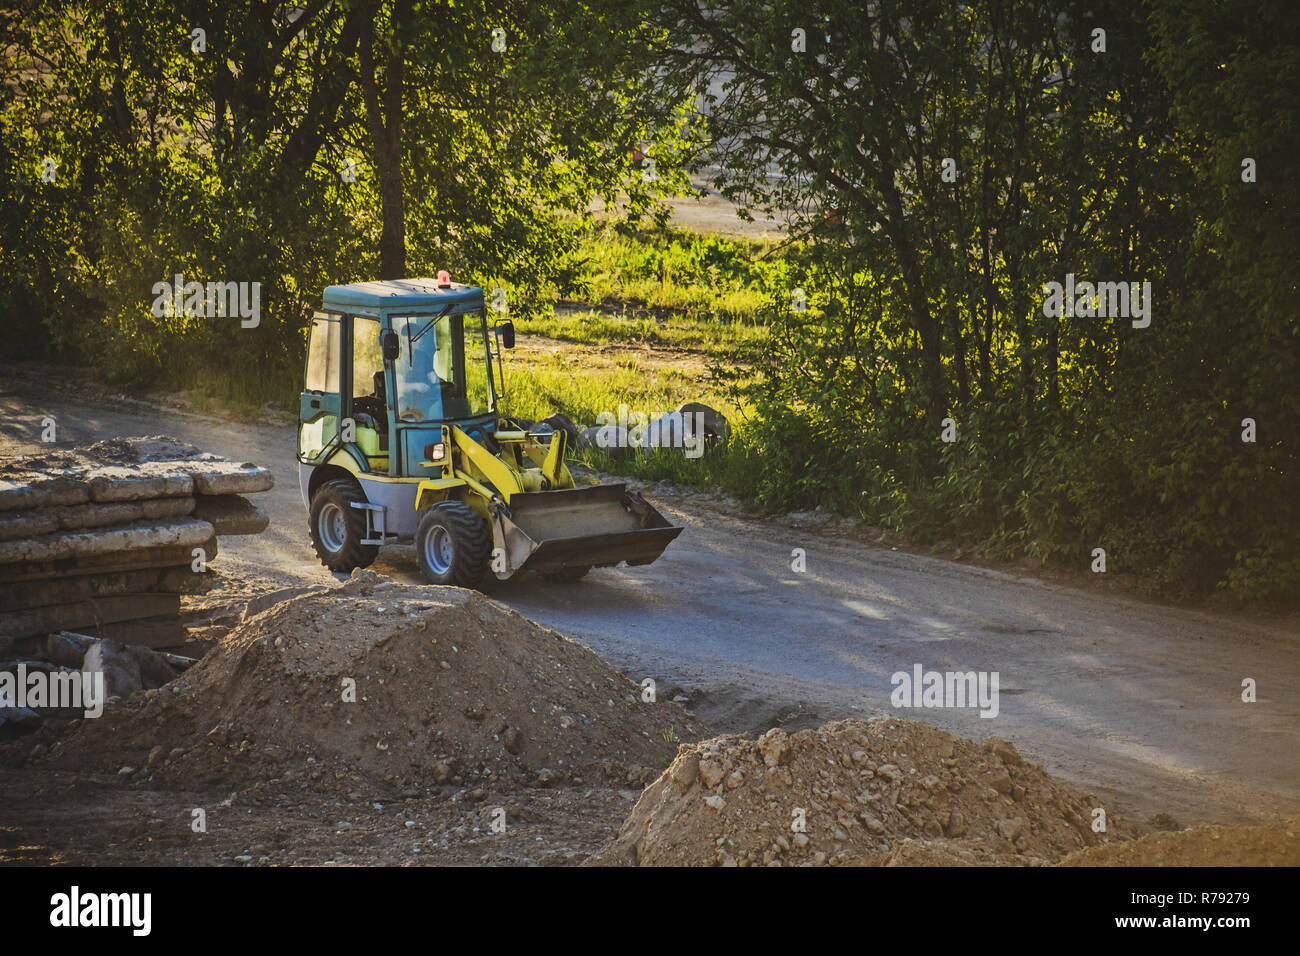 Small excavator car moving on a dusty road through construction place in sunset light - Stock Image